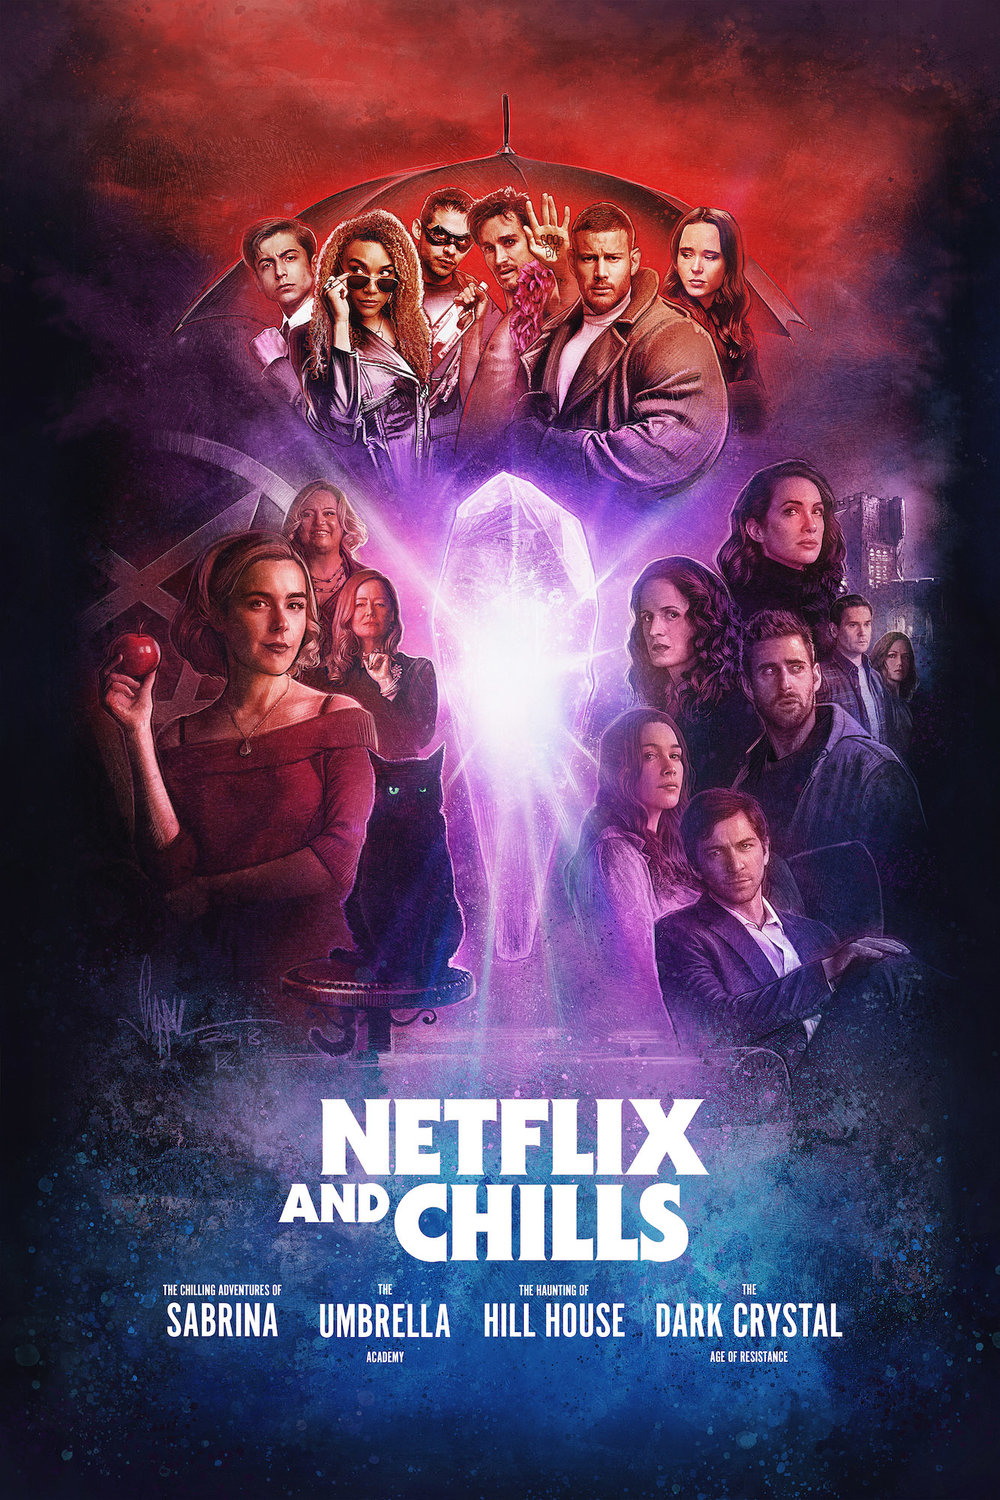 Netflix+and+Chills+-+Comp01d_72_col_shV2_Text+copy.jpg